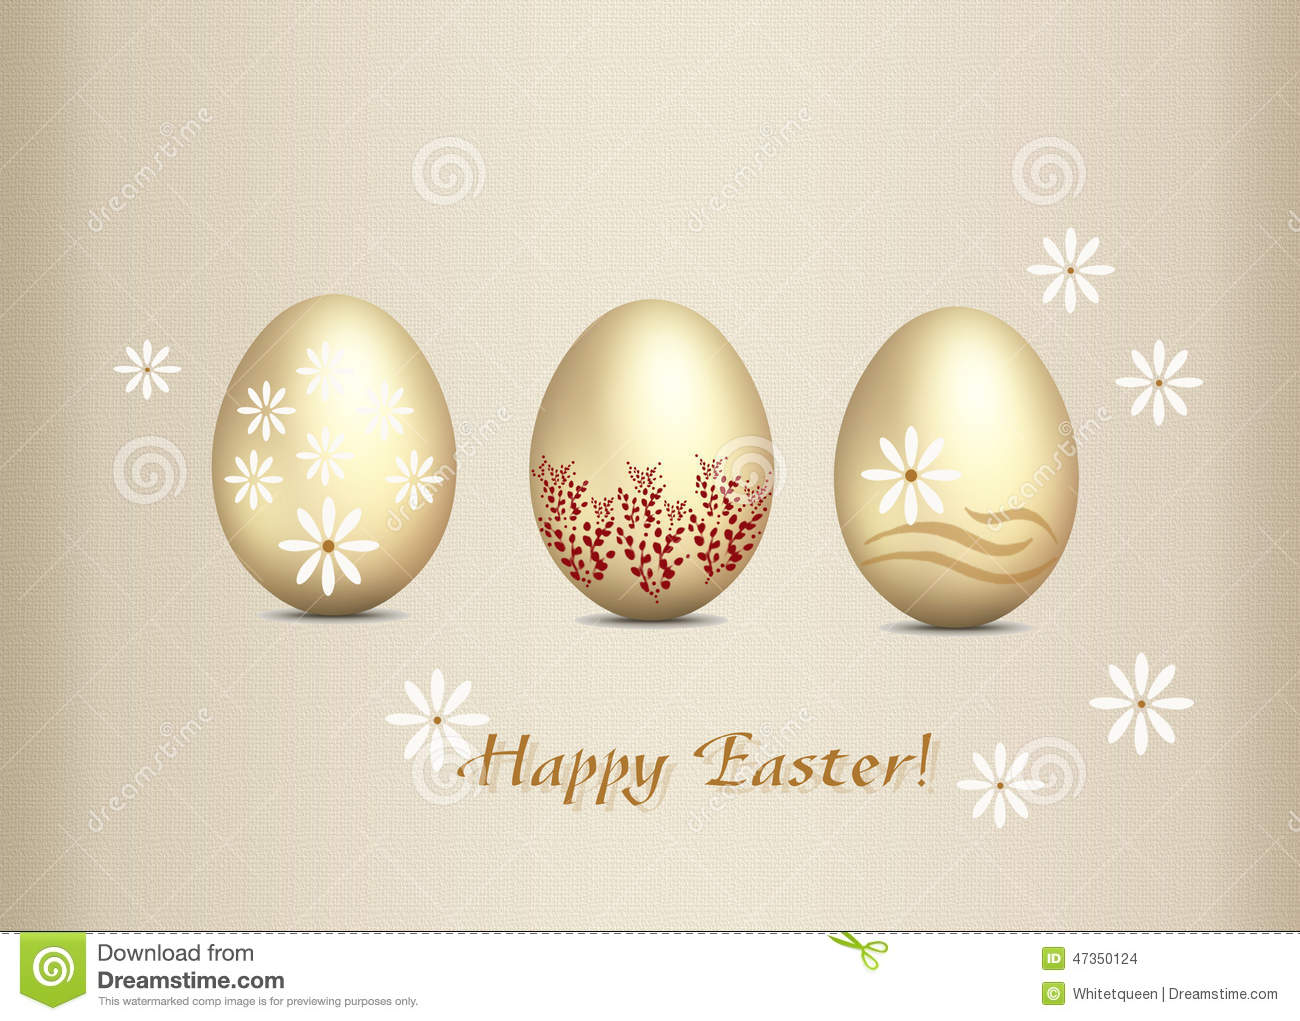 Greeting card happy easter stock photo image of painting 47350124 greeting card happy easter kristyandbryce Images